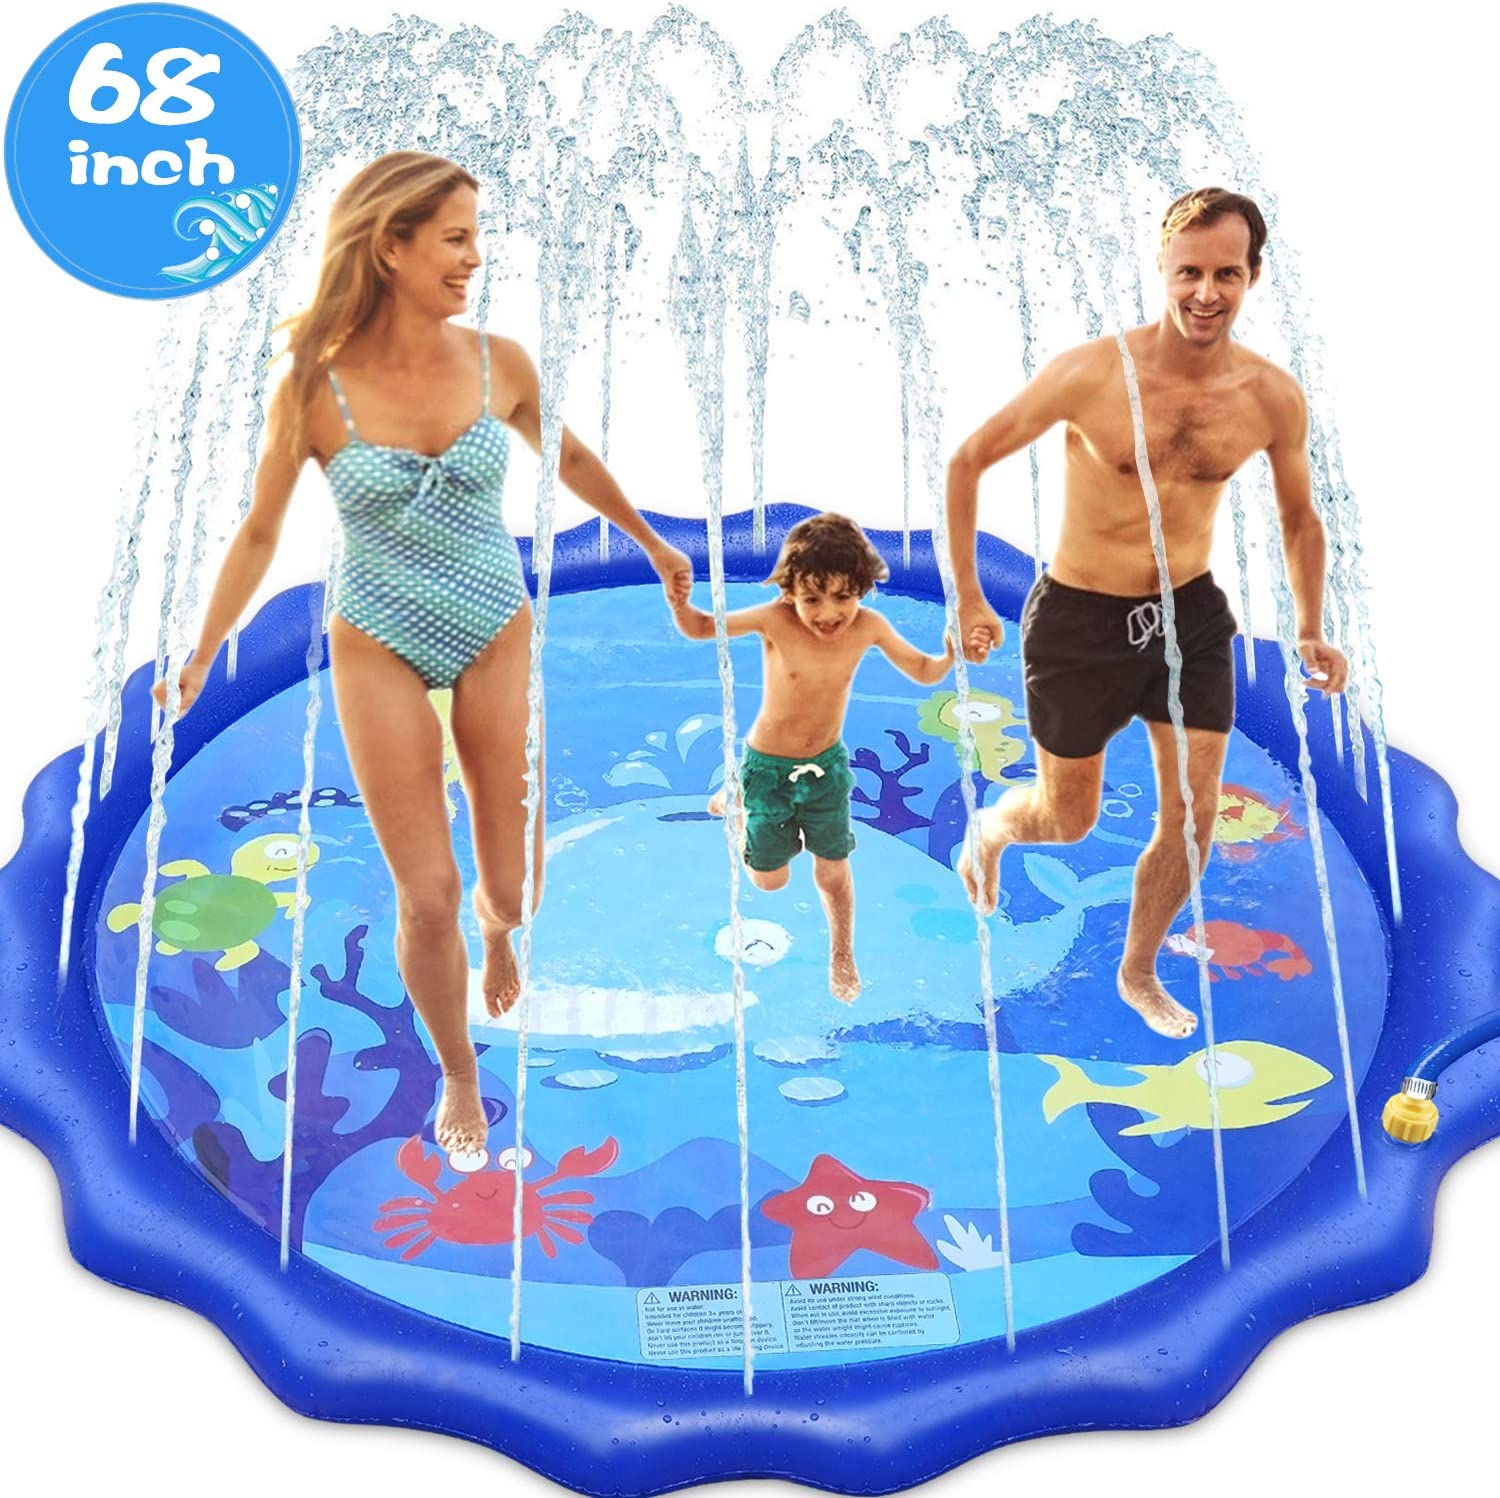 INNOCHEER Sprinkler Splash Pad for Kids Outdoor Play, 68 Inch Extra Large Children's Sprinkler Pool Water Wading Pool Summer Toys for Boys Girls 3+ Years Up: Toys & Games